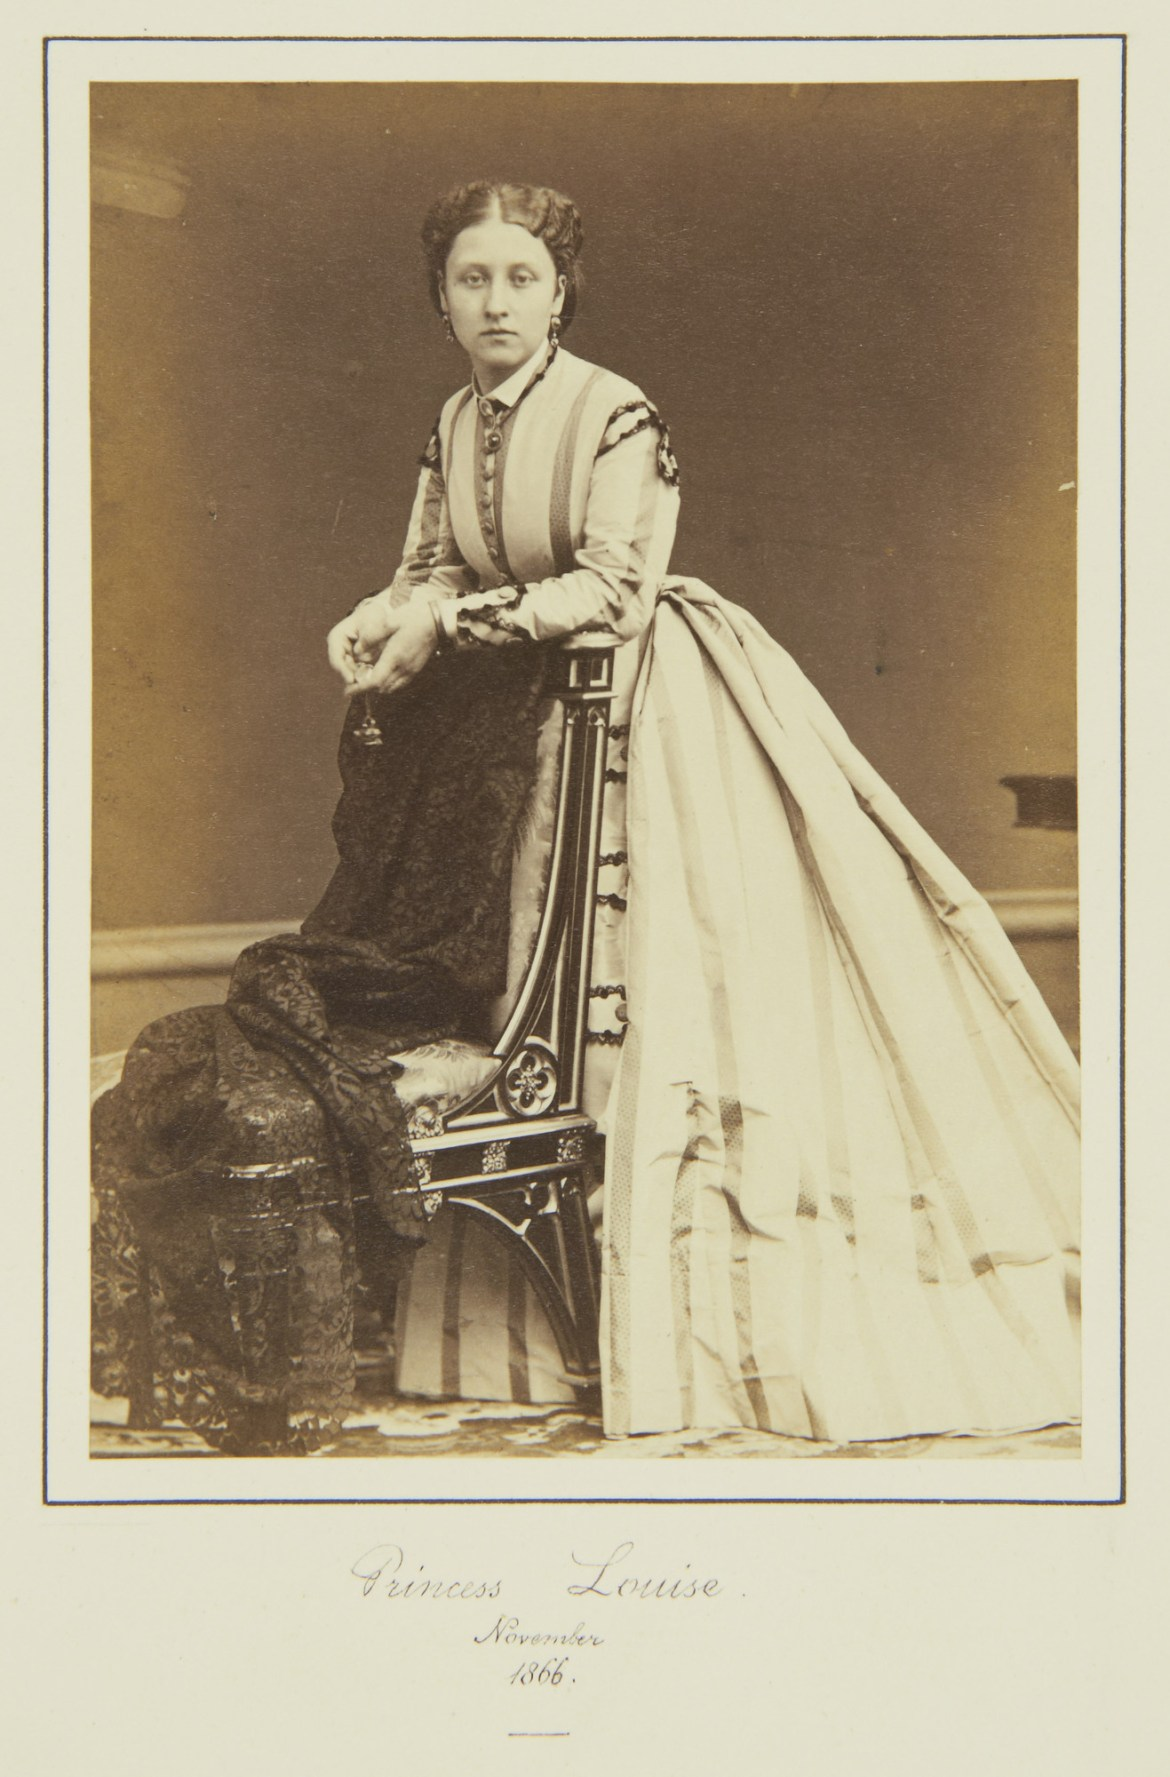 Princess Louise in 1866